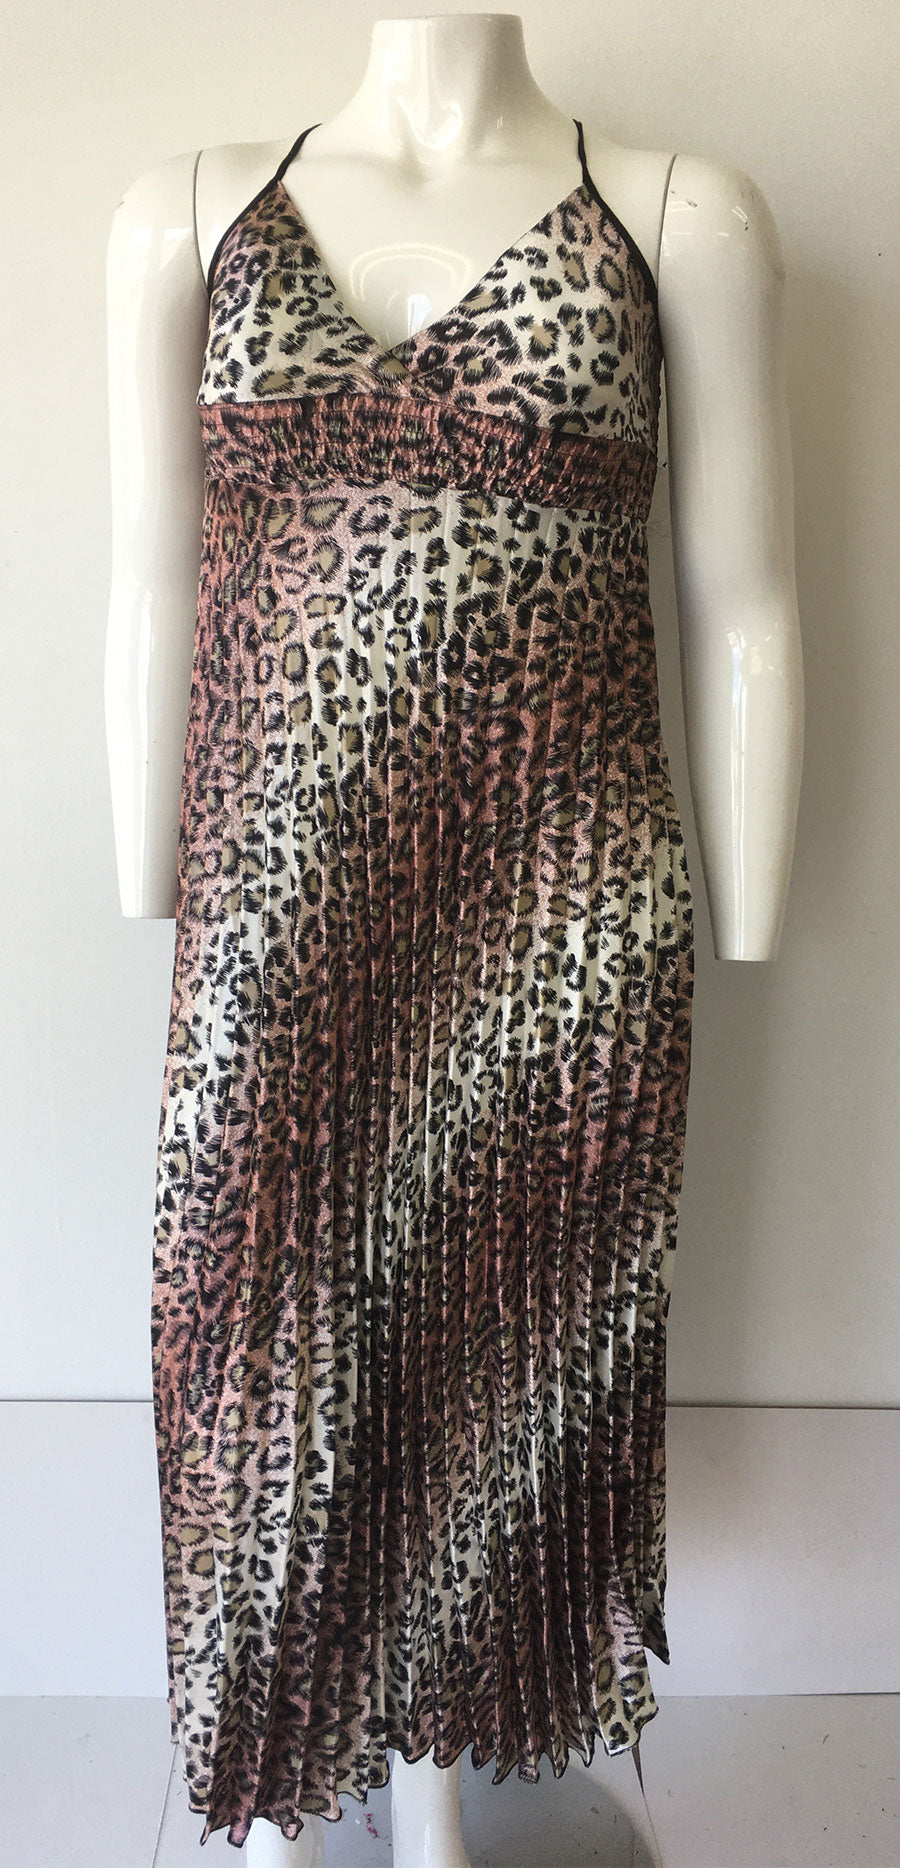 Casual Dress SB256-Leopard/Pink - Church Suits For Less